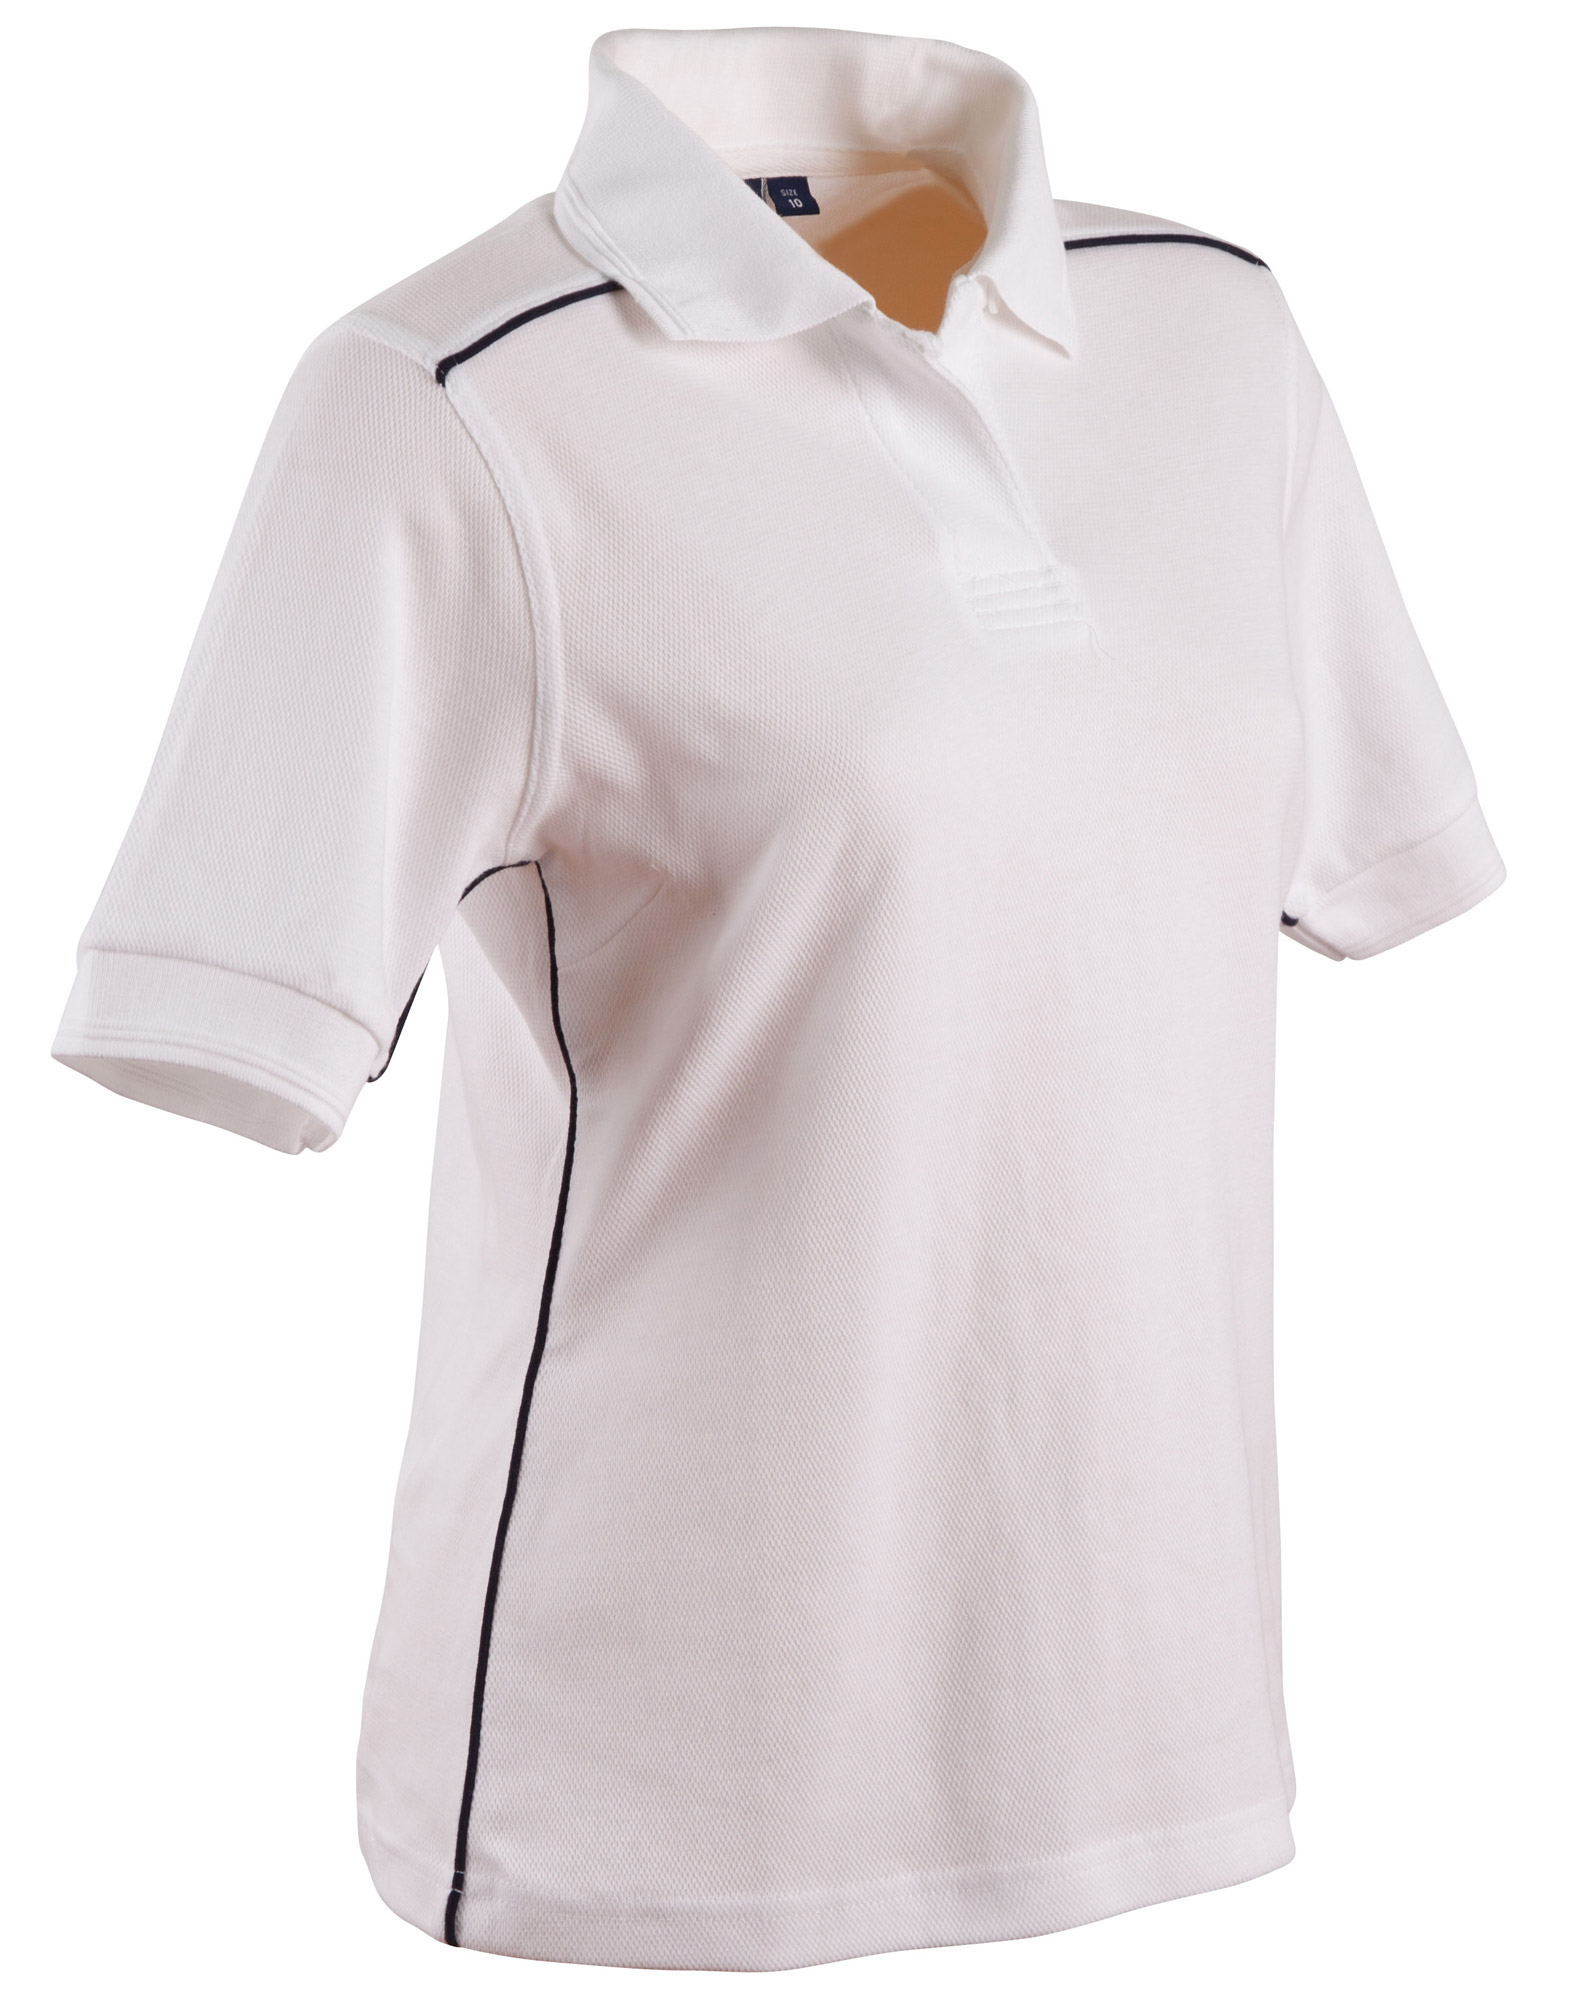 https://s3-ap-southeast-1.amazonaws.com/ws-imgs/POLOSHIRTS/PS26_White.Navy_SIDE_l.jpg